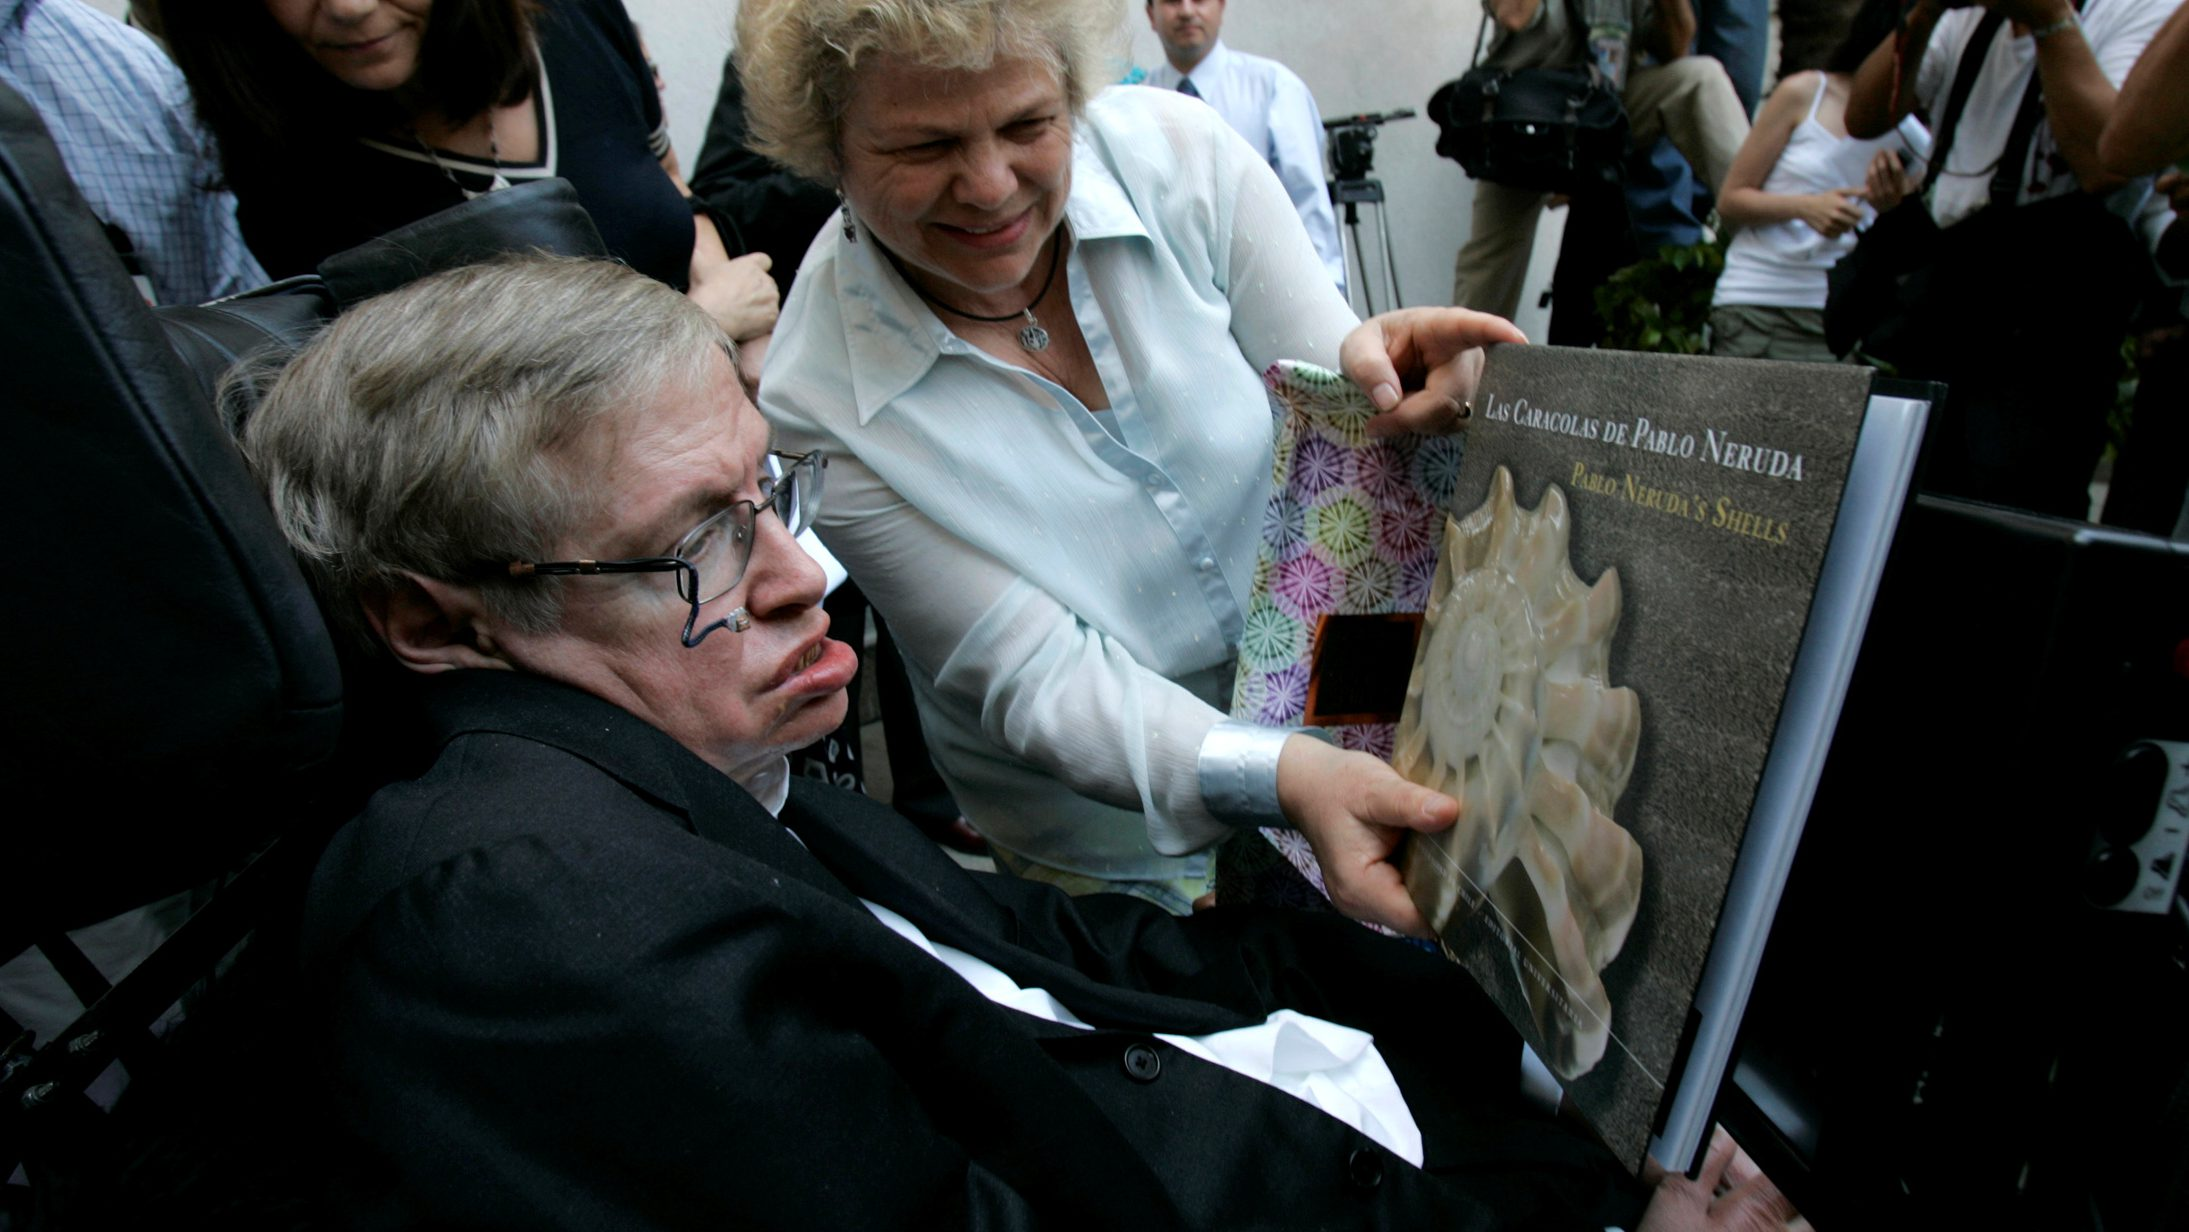 Stephen Hawking looking at a book